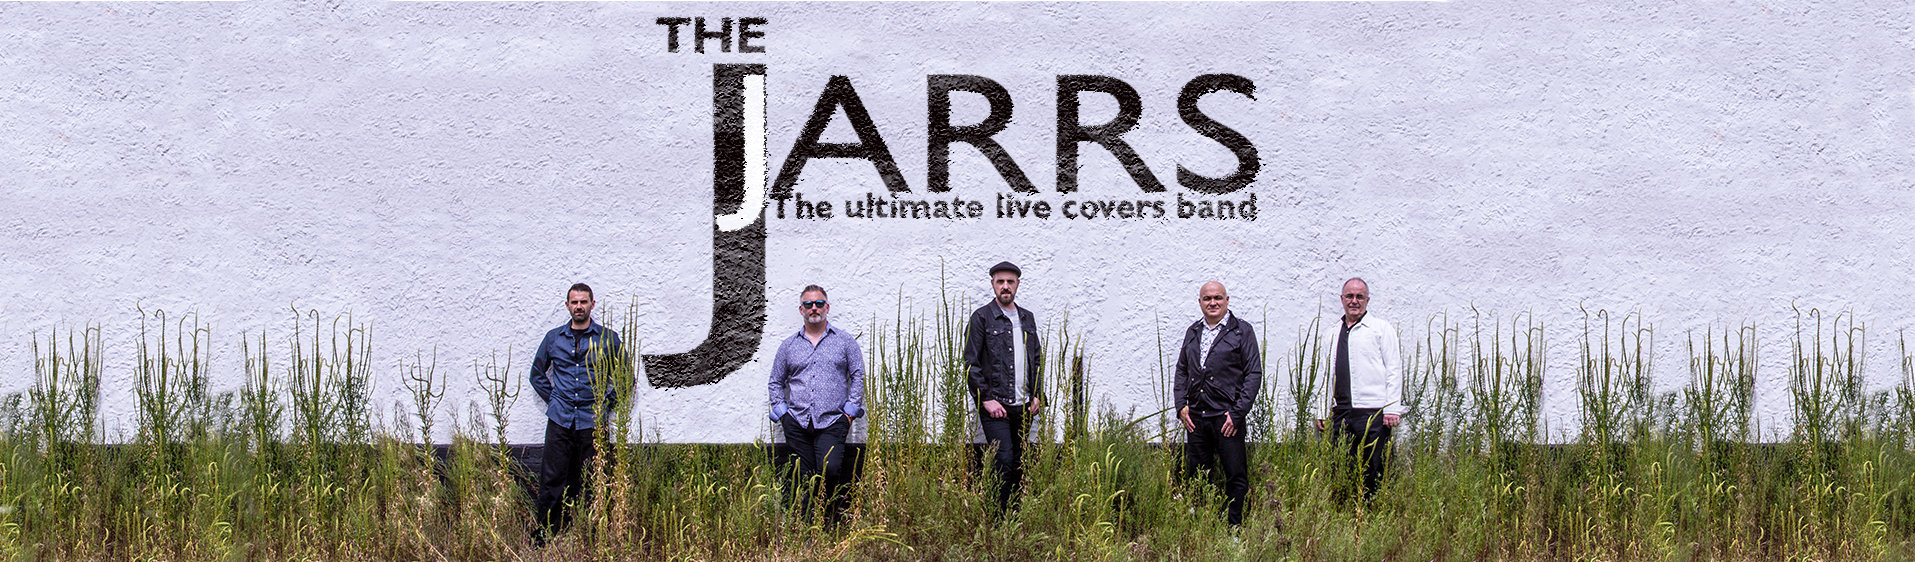 The Jjarrs - The Ultimate Live Function Band